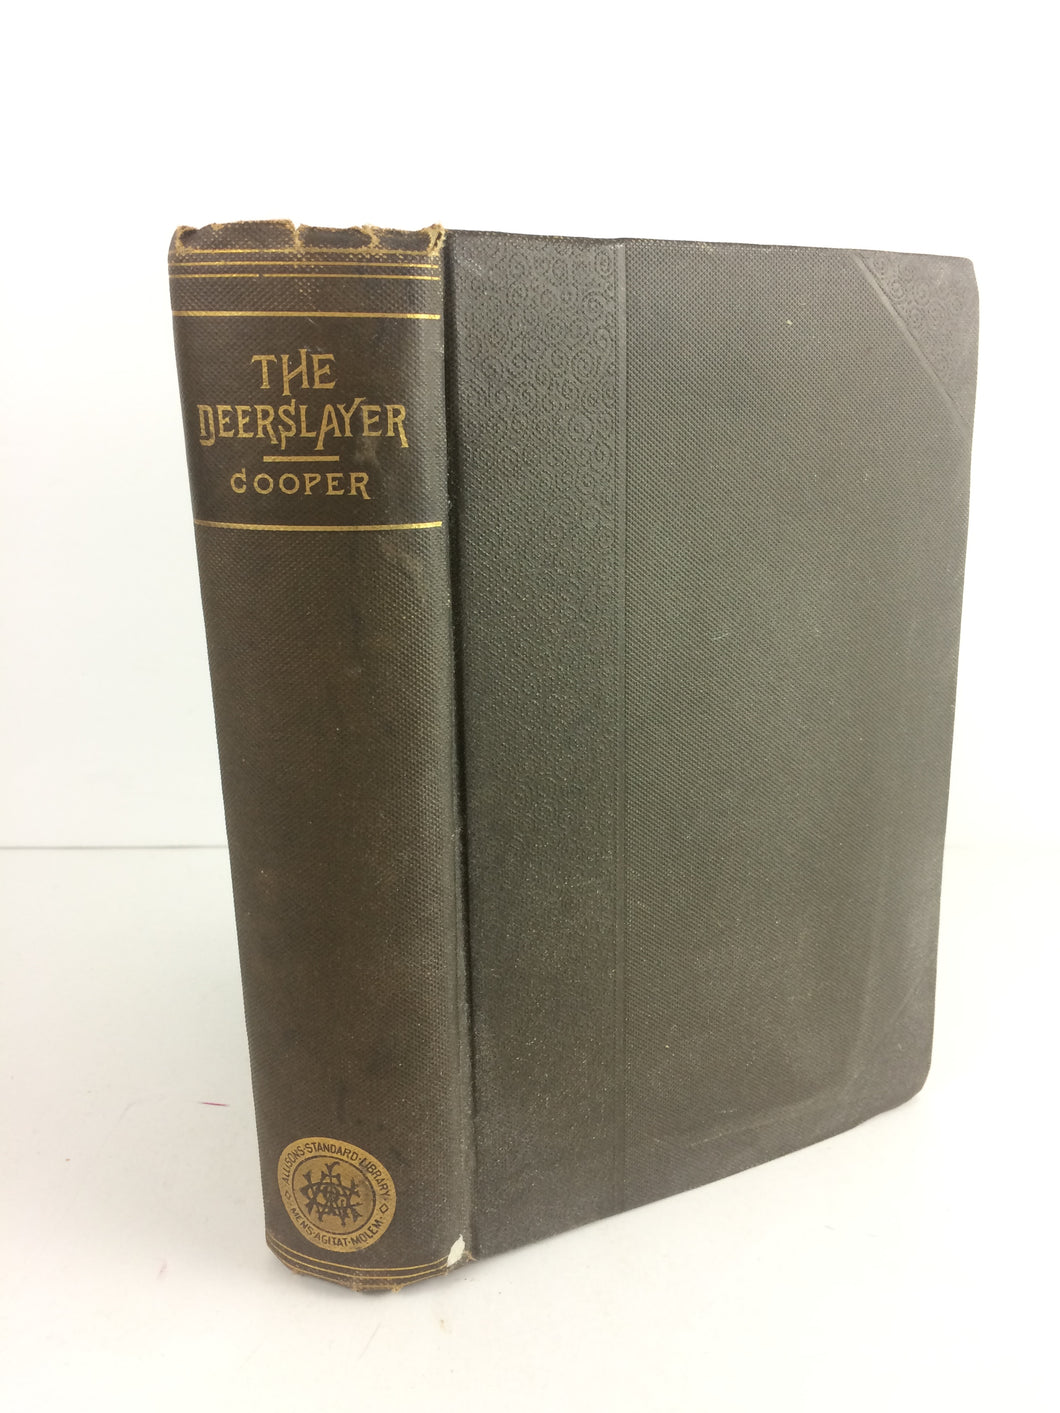 The Deerslayer on The First War-Path, A Tale, J. Fenimore Cooper